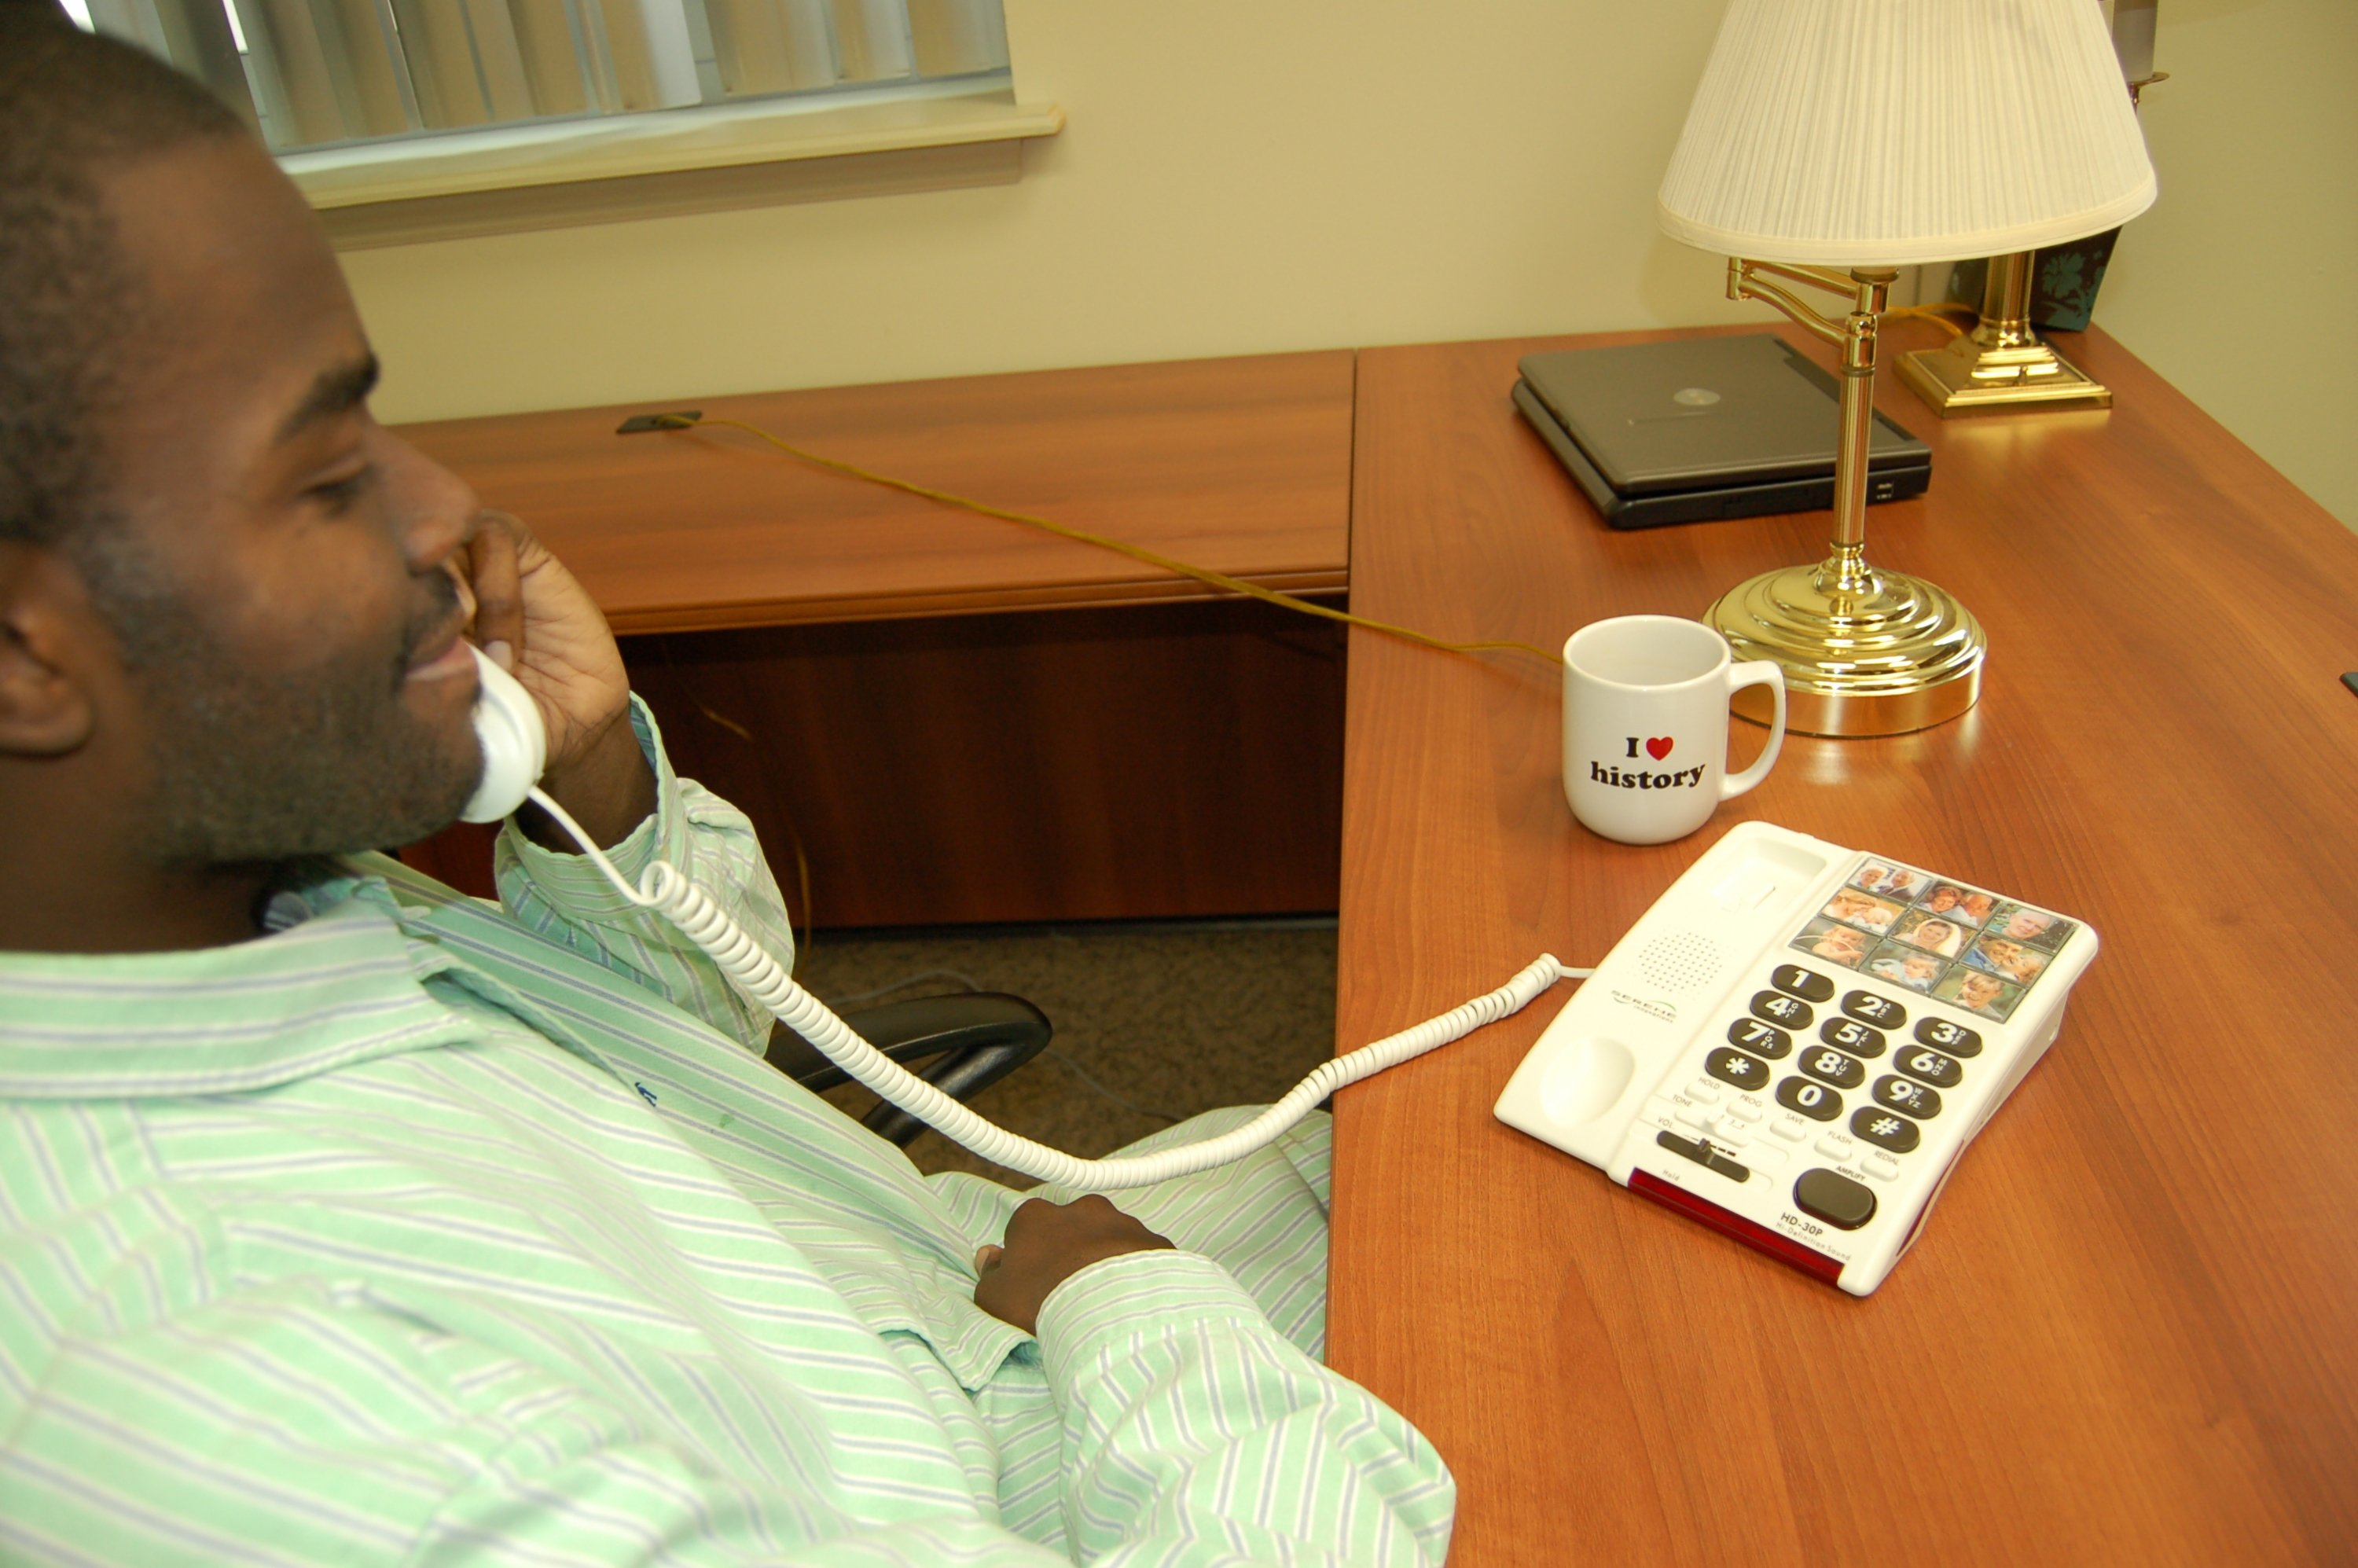 oung man at an office desk talking on a phone which feature large buttons and picture but